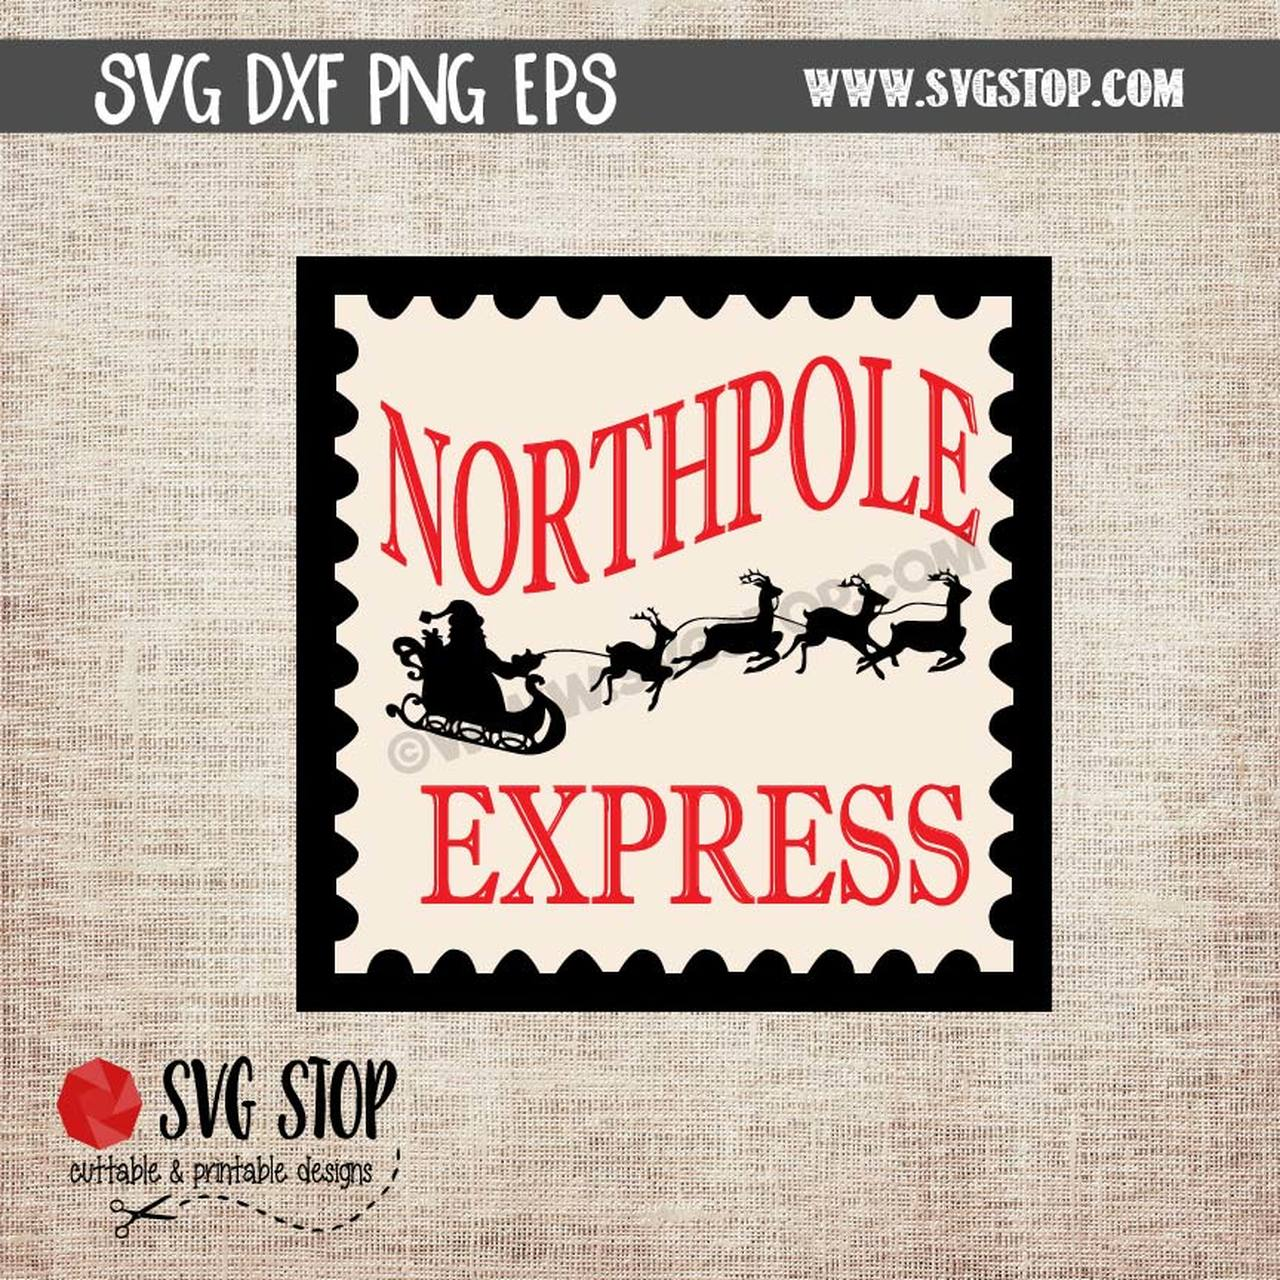 Stamp clipart north pole. Northpole express postage svg